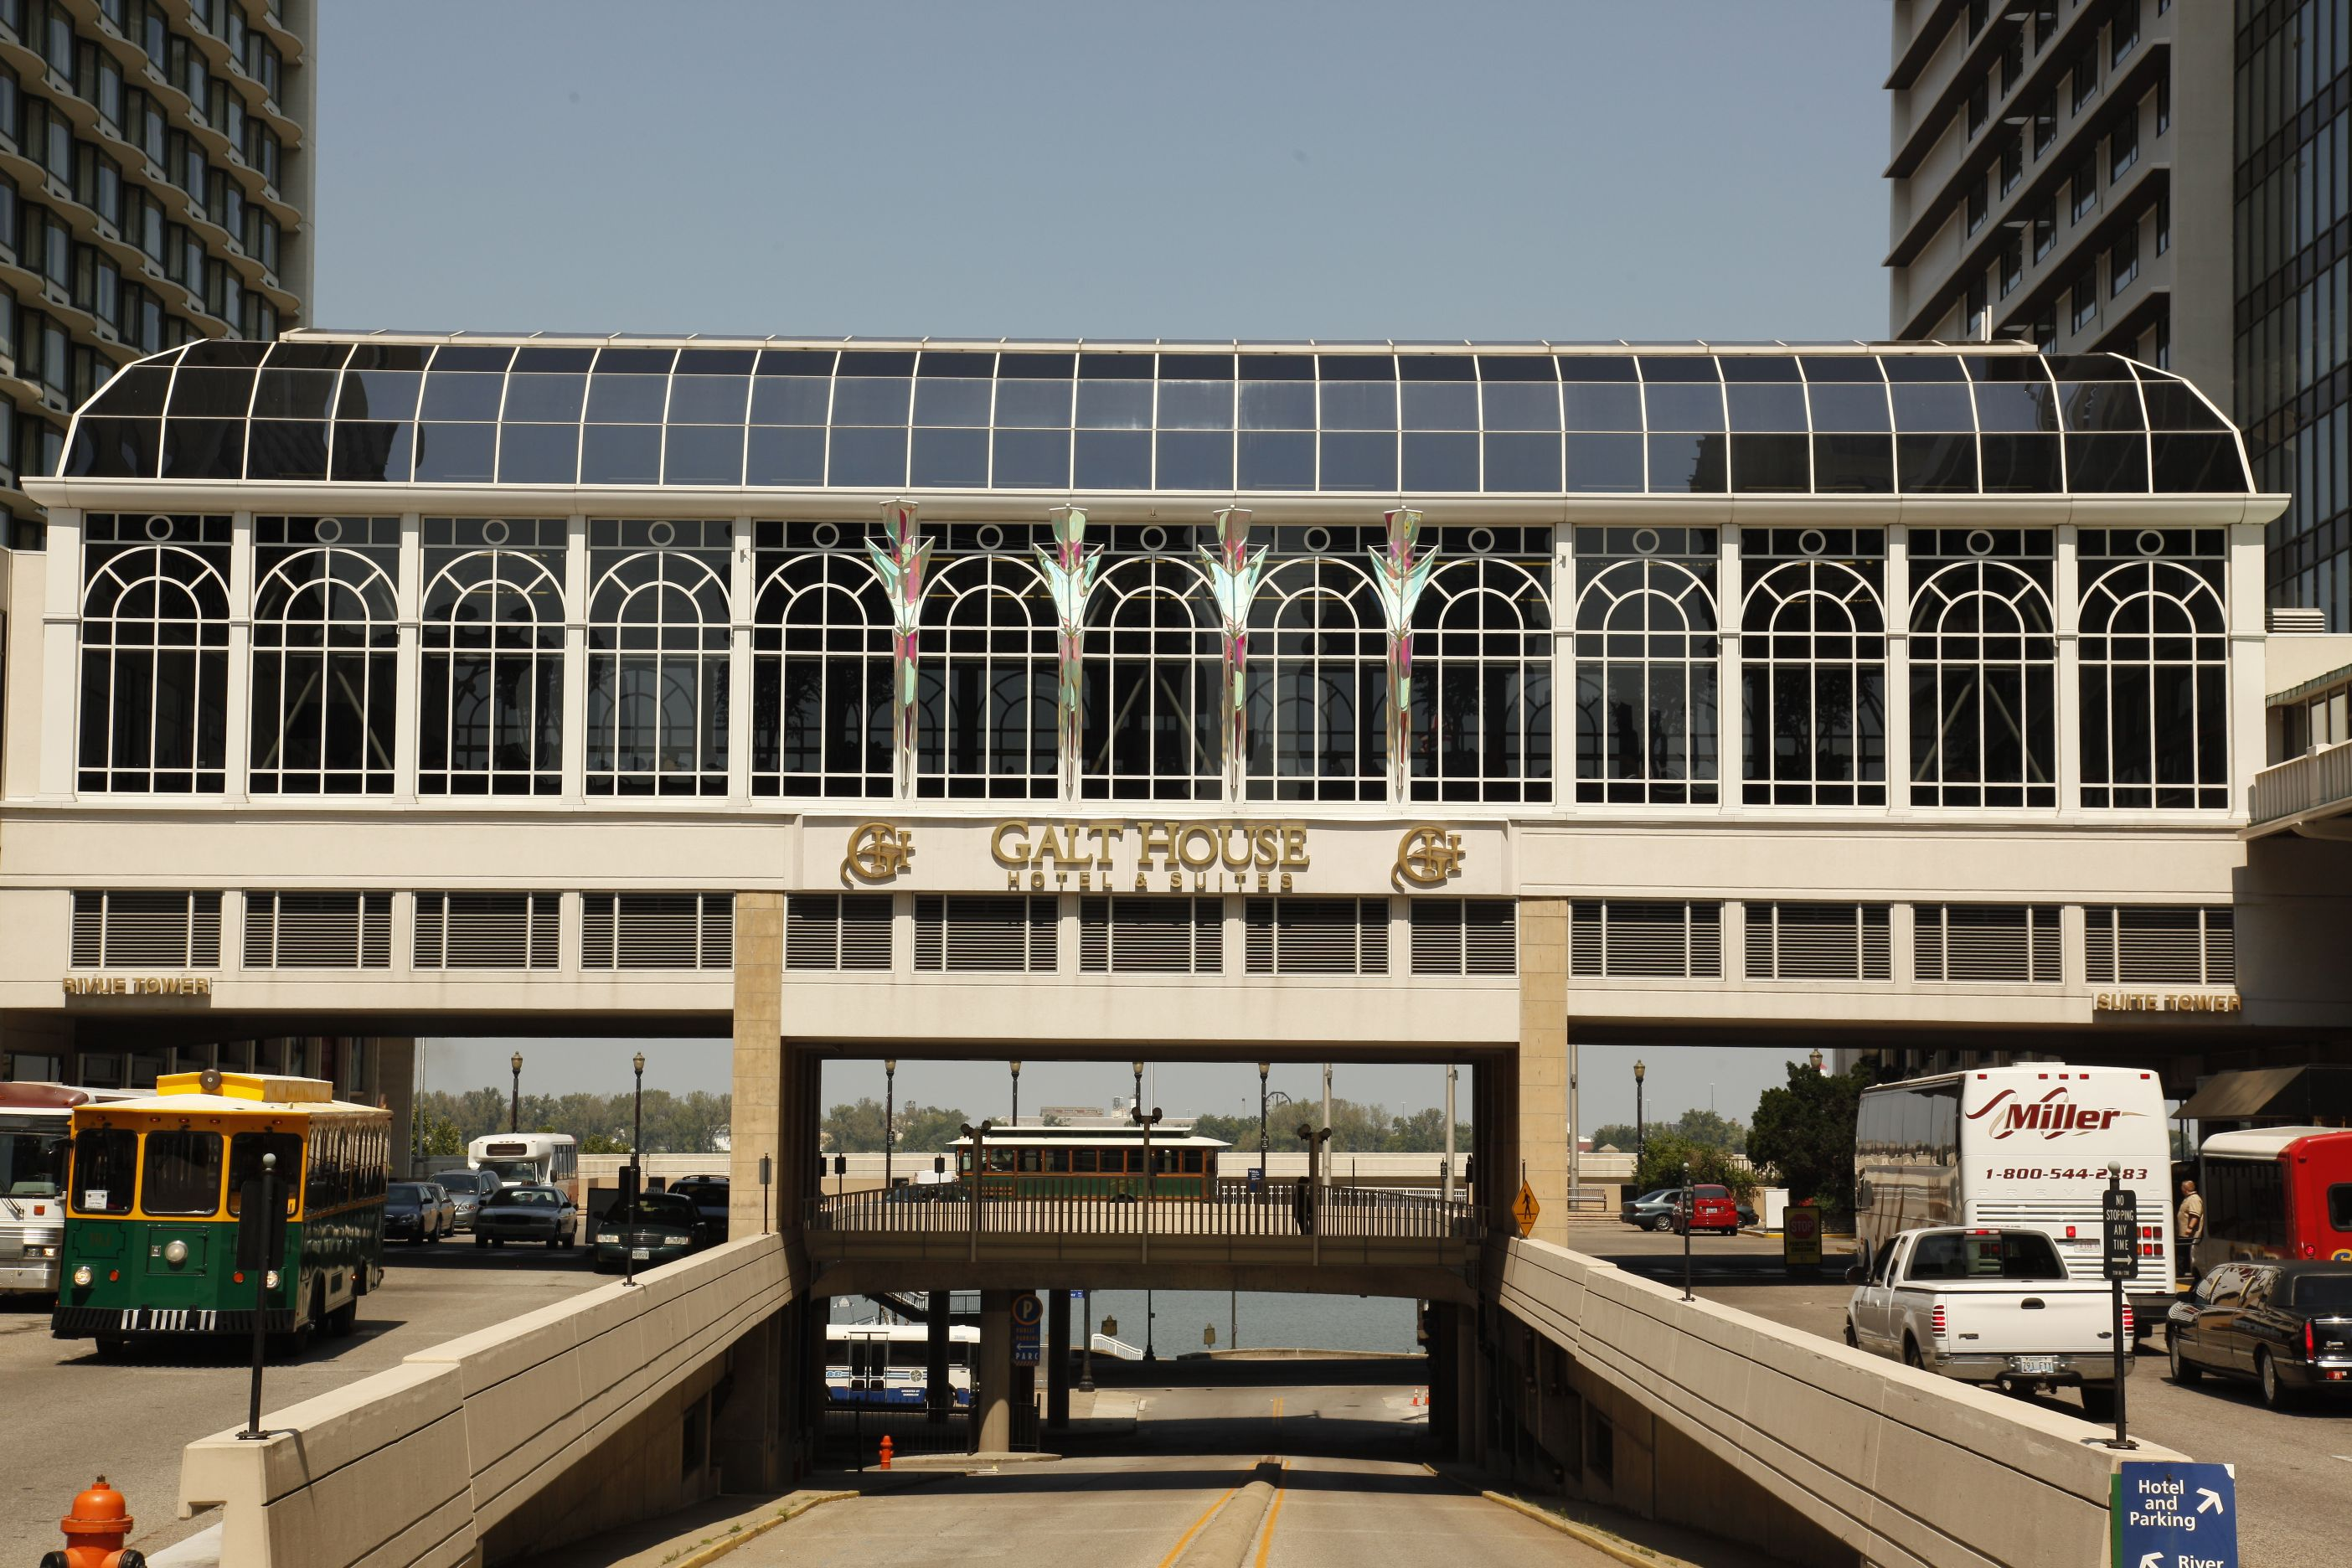 Galt House Hotel Jpgthe The Heart Of Louisville Is One Largest Hotels In Southeast